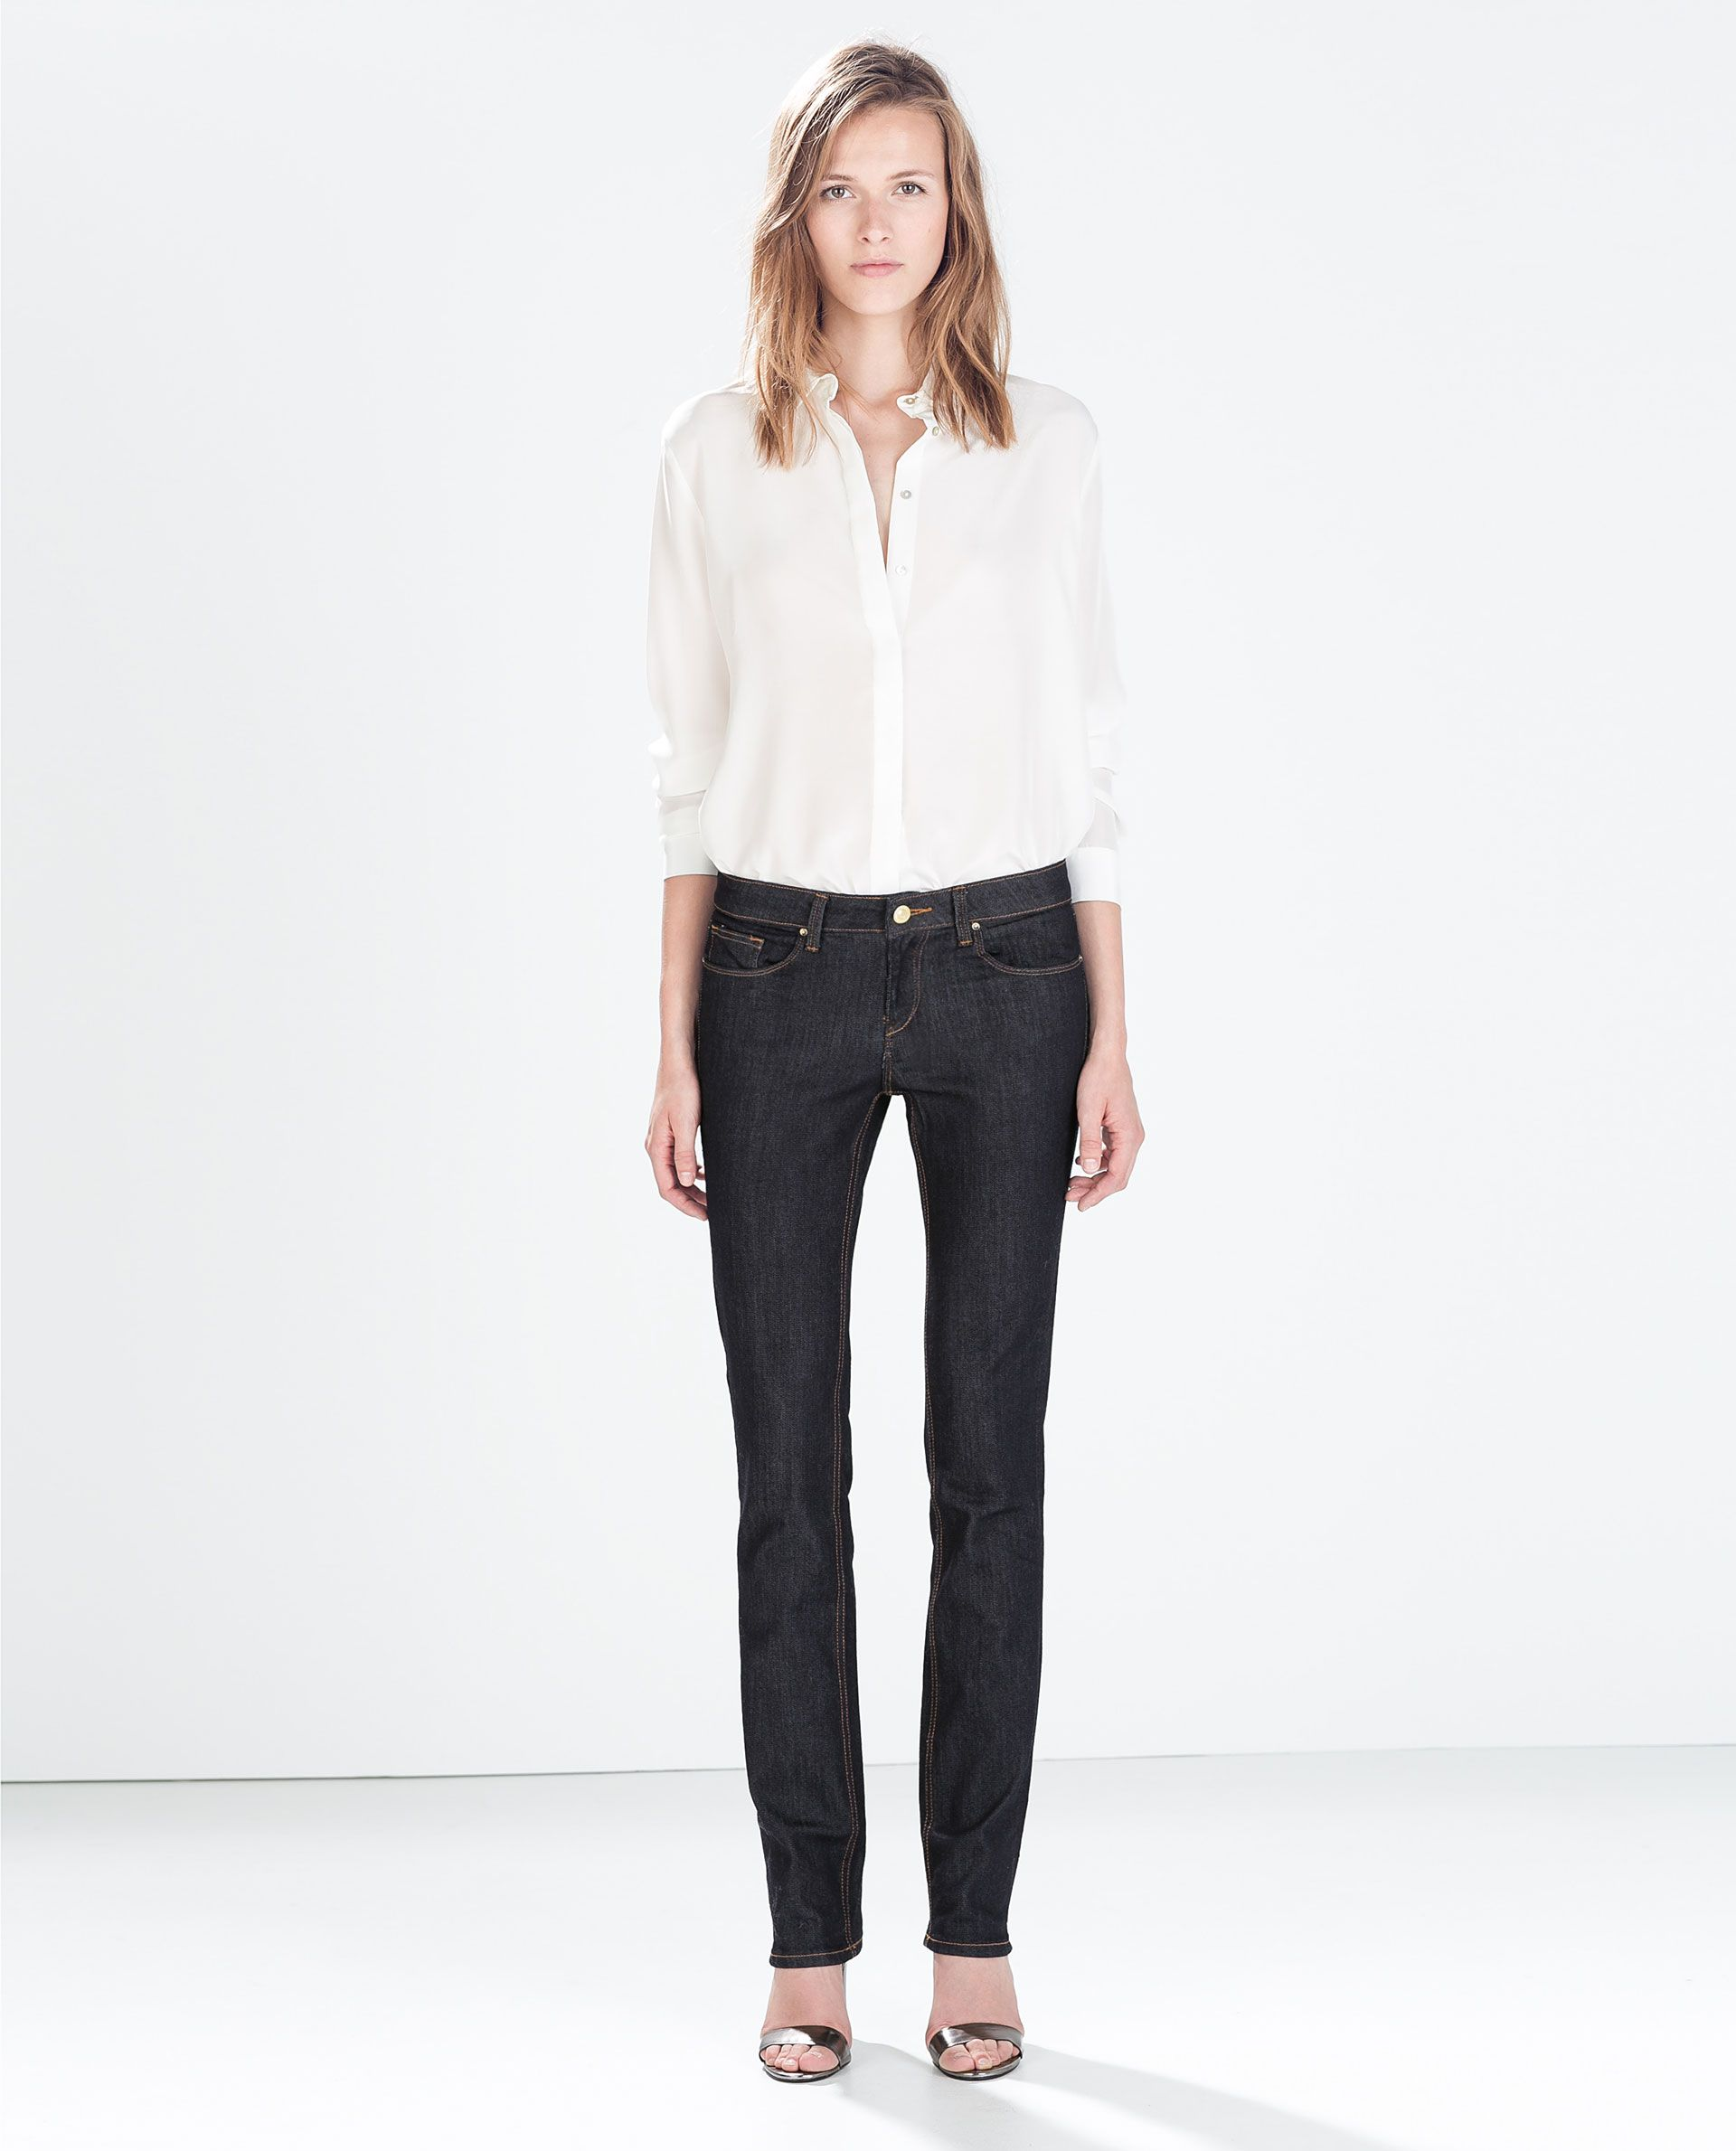 STRAIGHT JEANS WITH WASHED FINISH from Zara